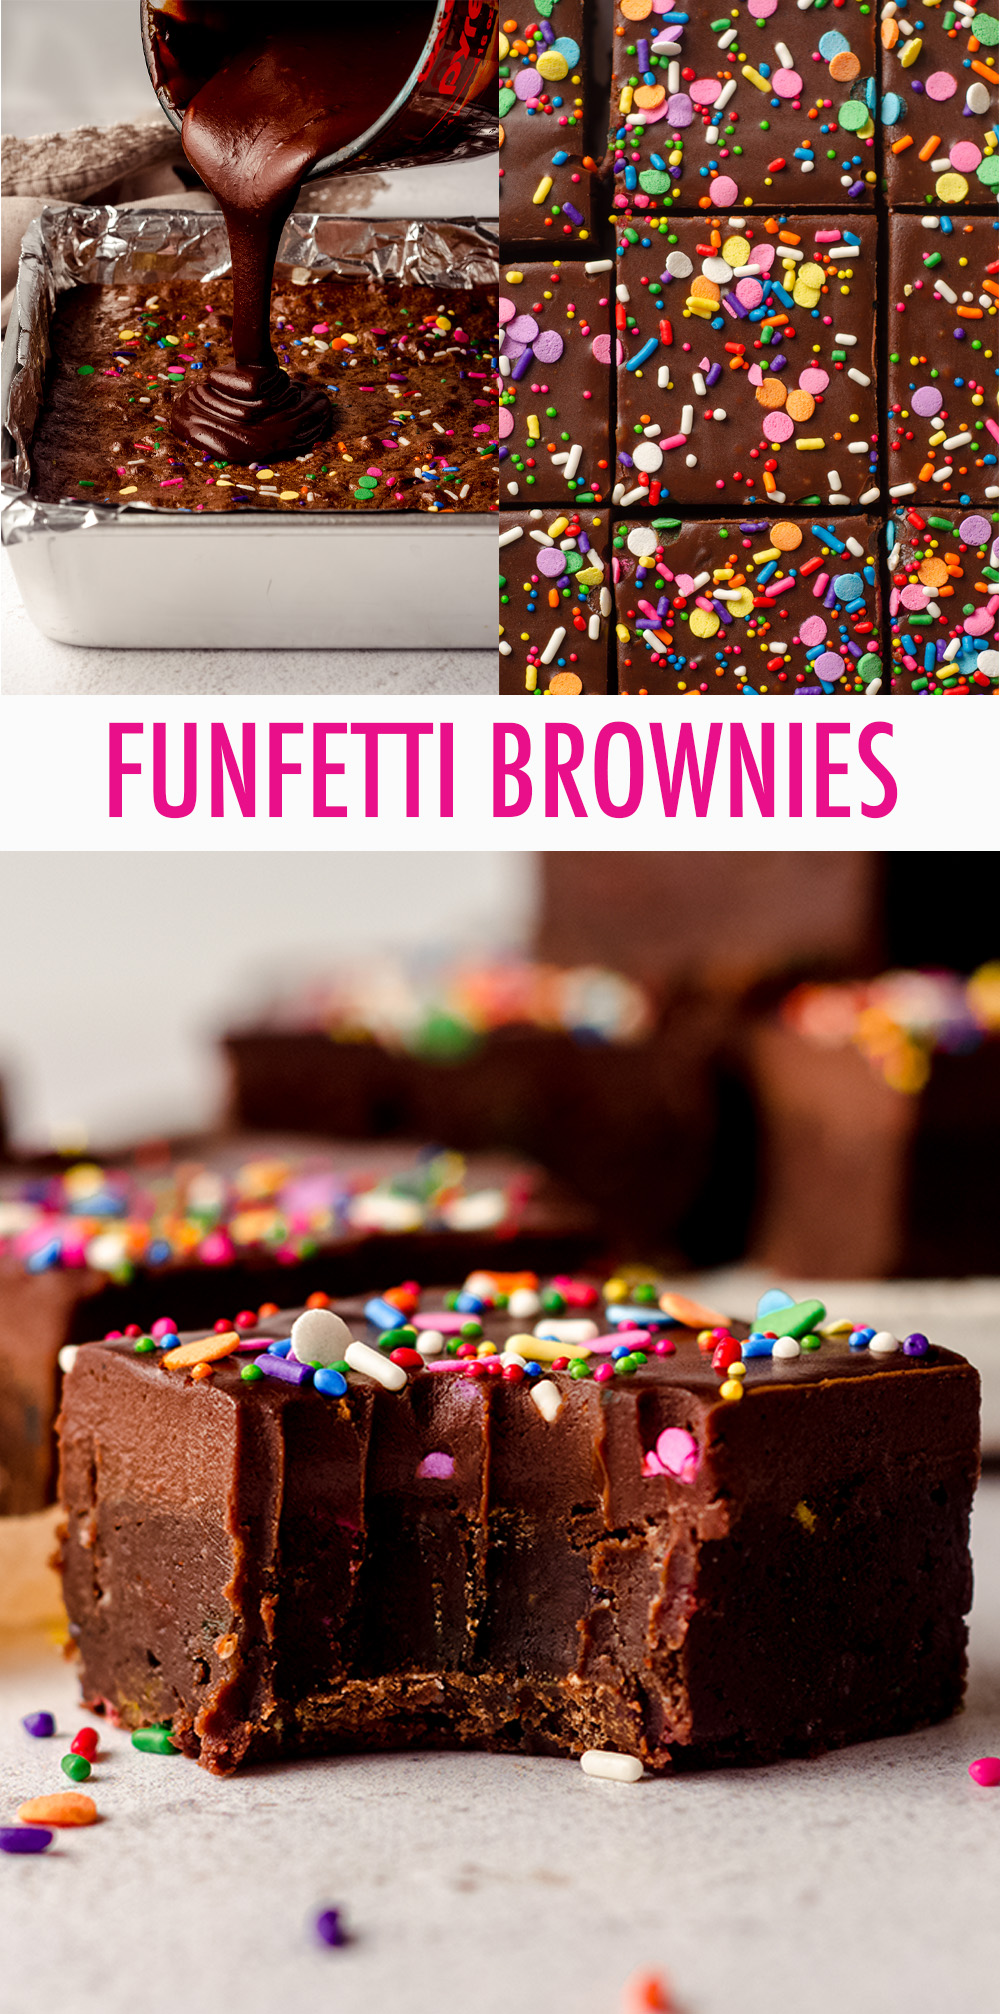 Simple from-scratch brownies filled with sprinkles and topped with a smooth and creamy chocolate ganache.